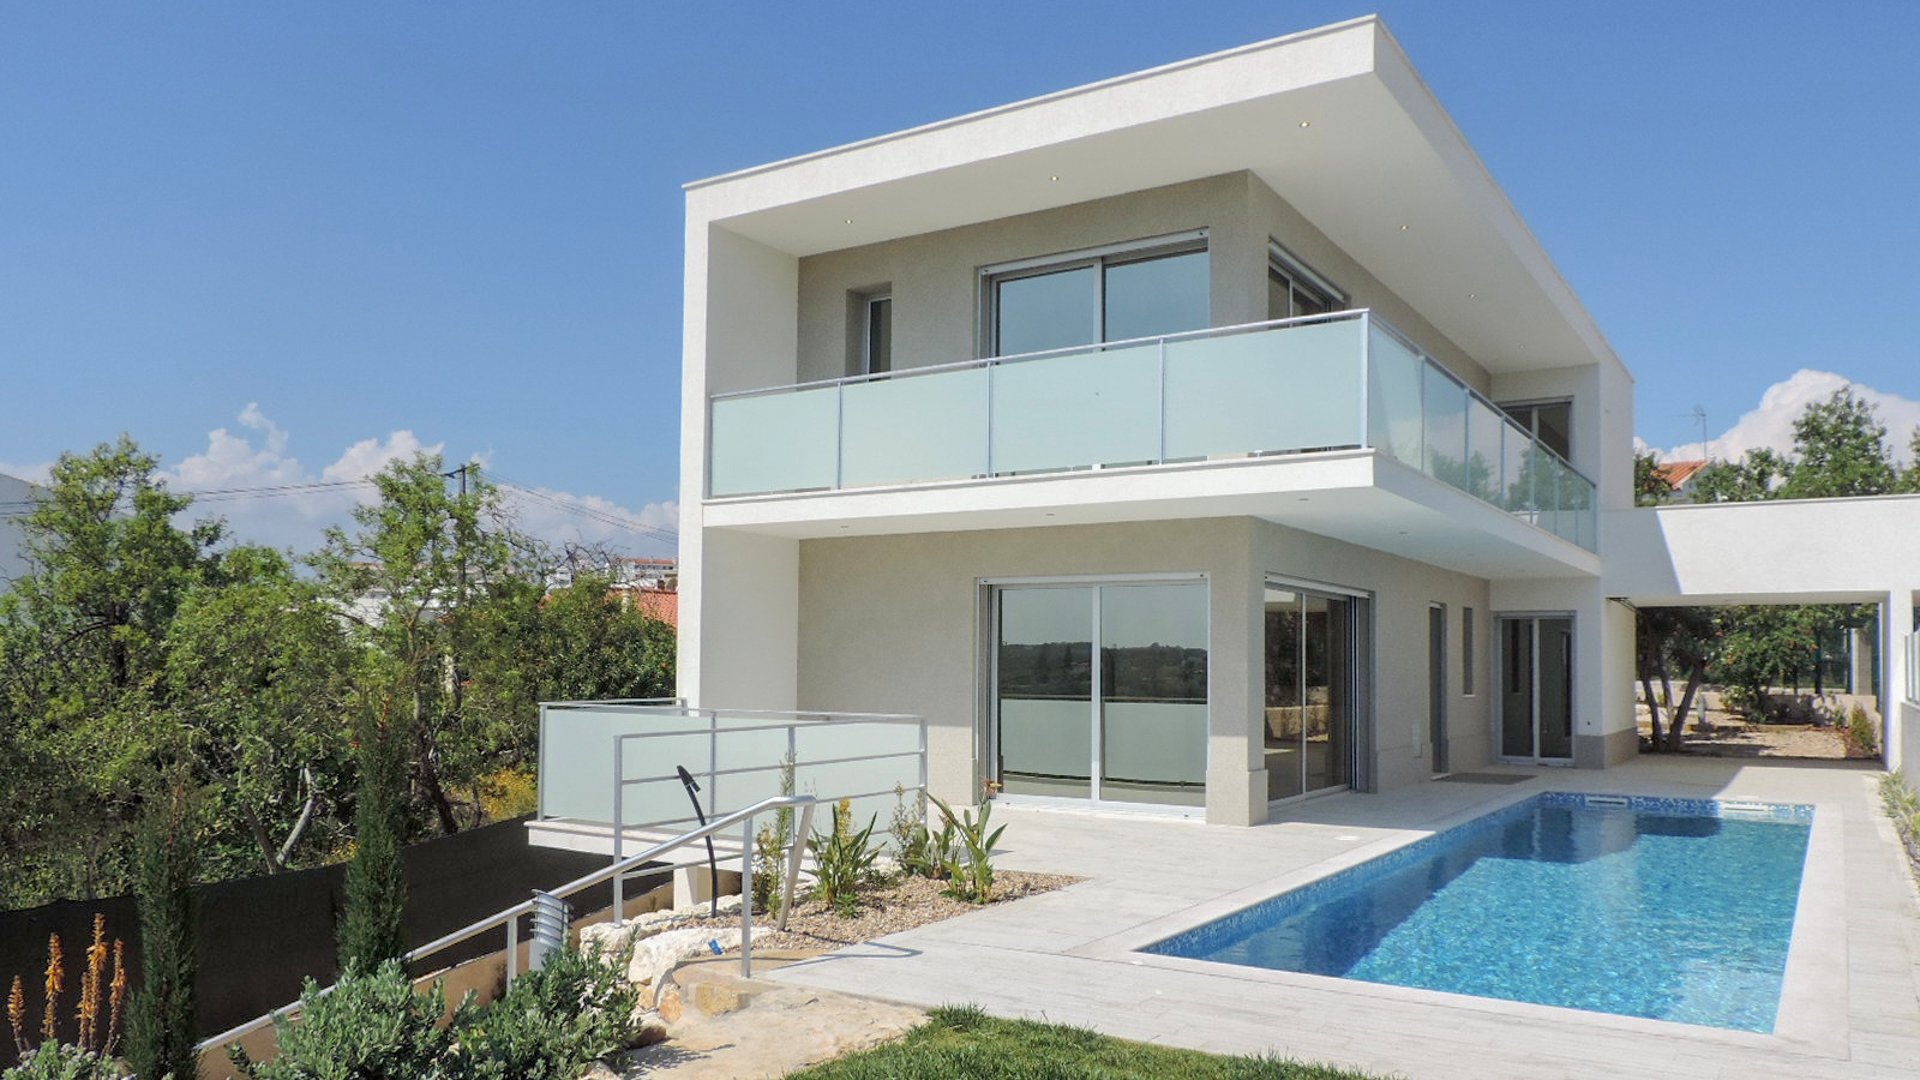 Brand New 4 Bedroom Villa with Sea Views in Pêra | VM954 New 4 bedroom villa close to amenities and beach, in Pêra. The villa has a fully equipped kitchen and several technological details to give more comfort to its owners. It has also a pool and garden.